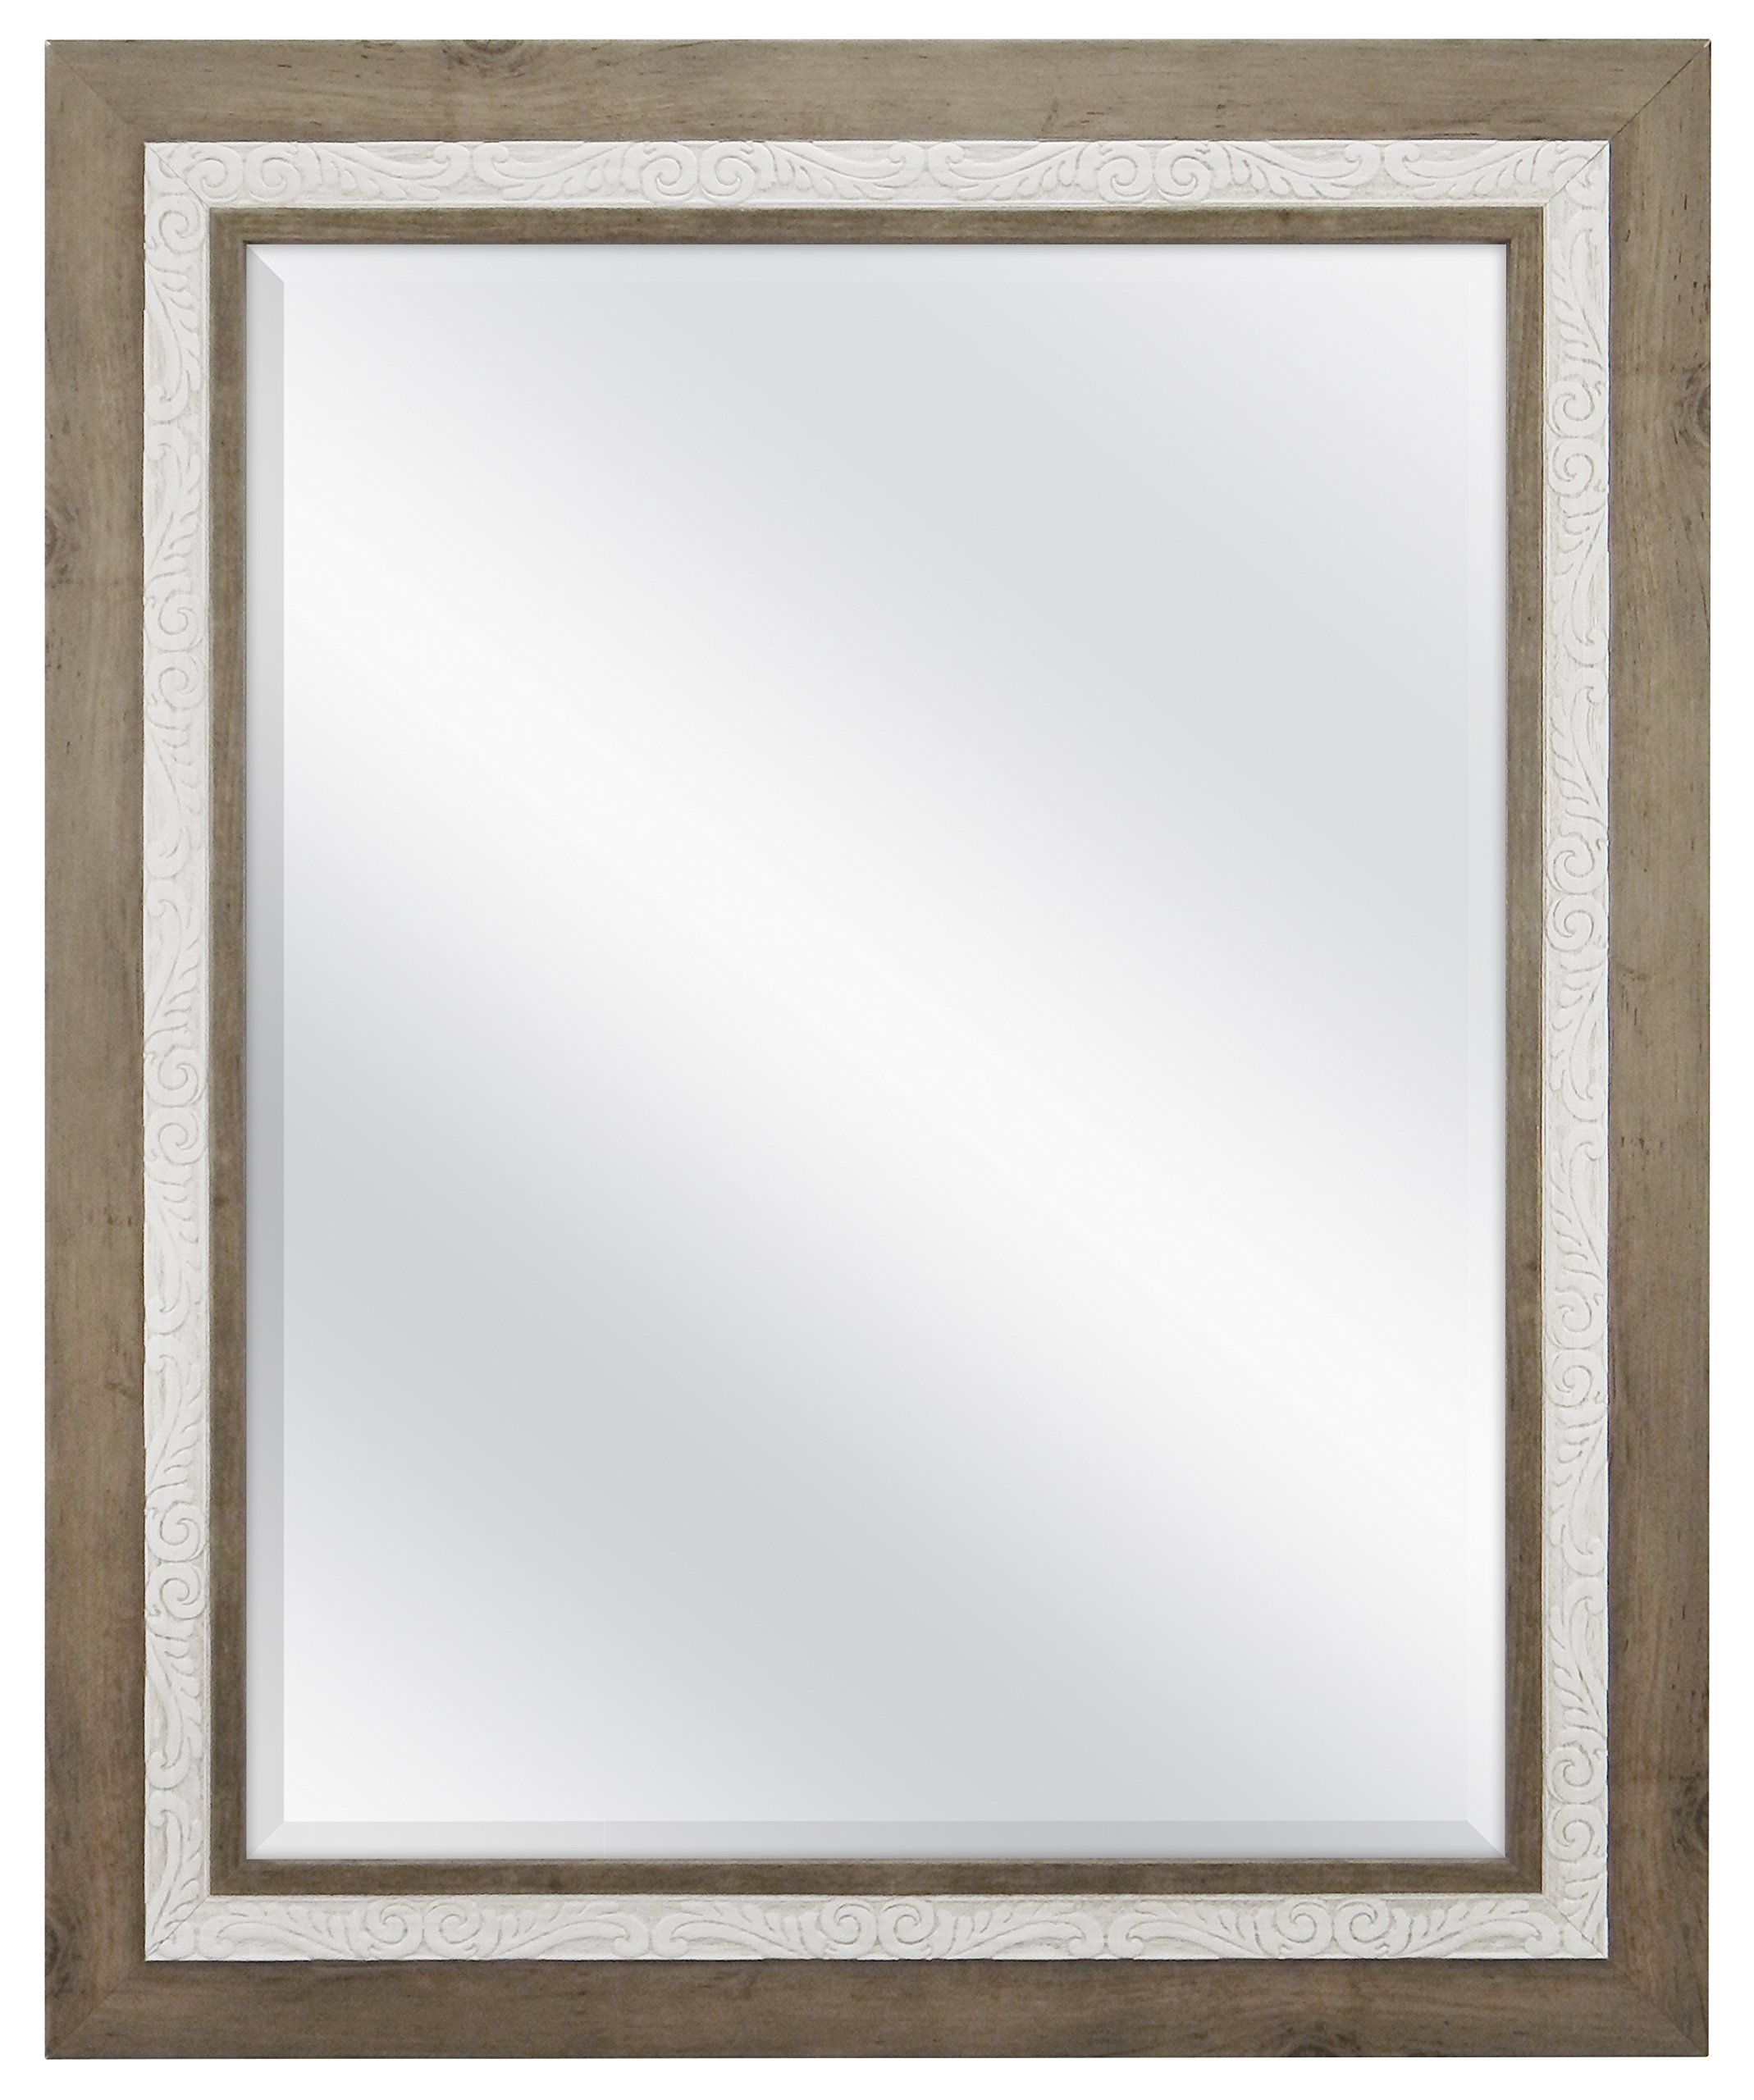 Mcs 22X28 Inch Beveled Wall Mirror Rustic Wood & Embossed,